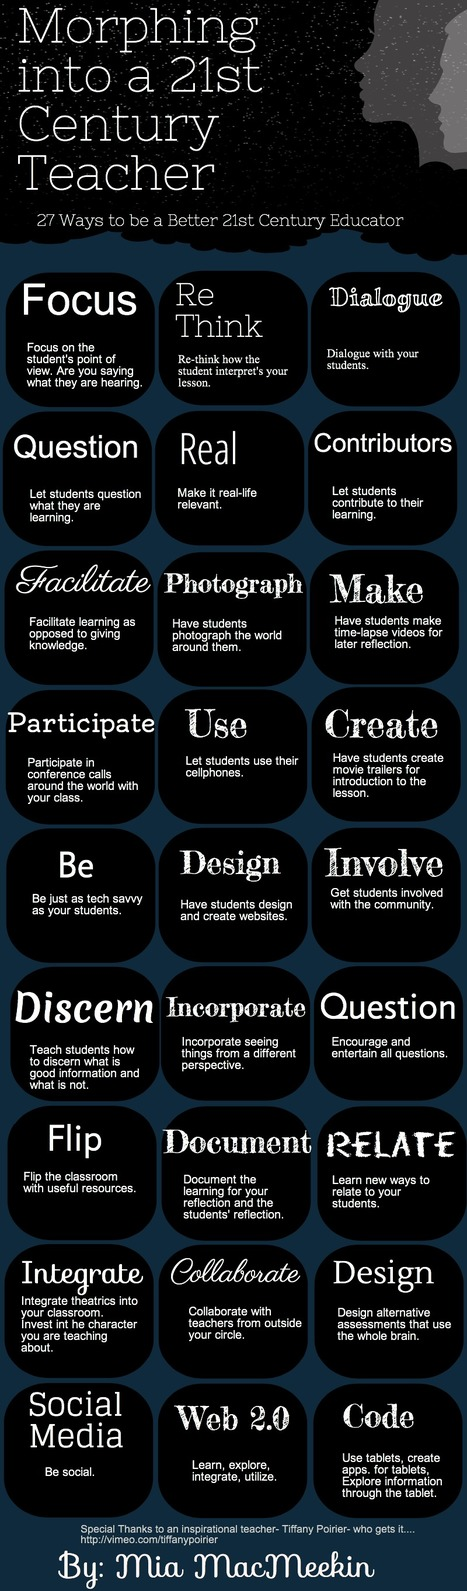 27 Ways To Be A 21st Century Teacher - Infographic | E-Learning Toolkit | Scoop.it